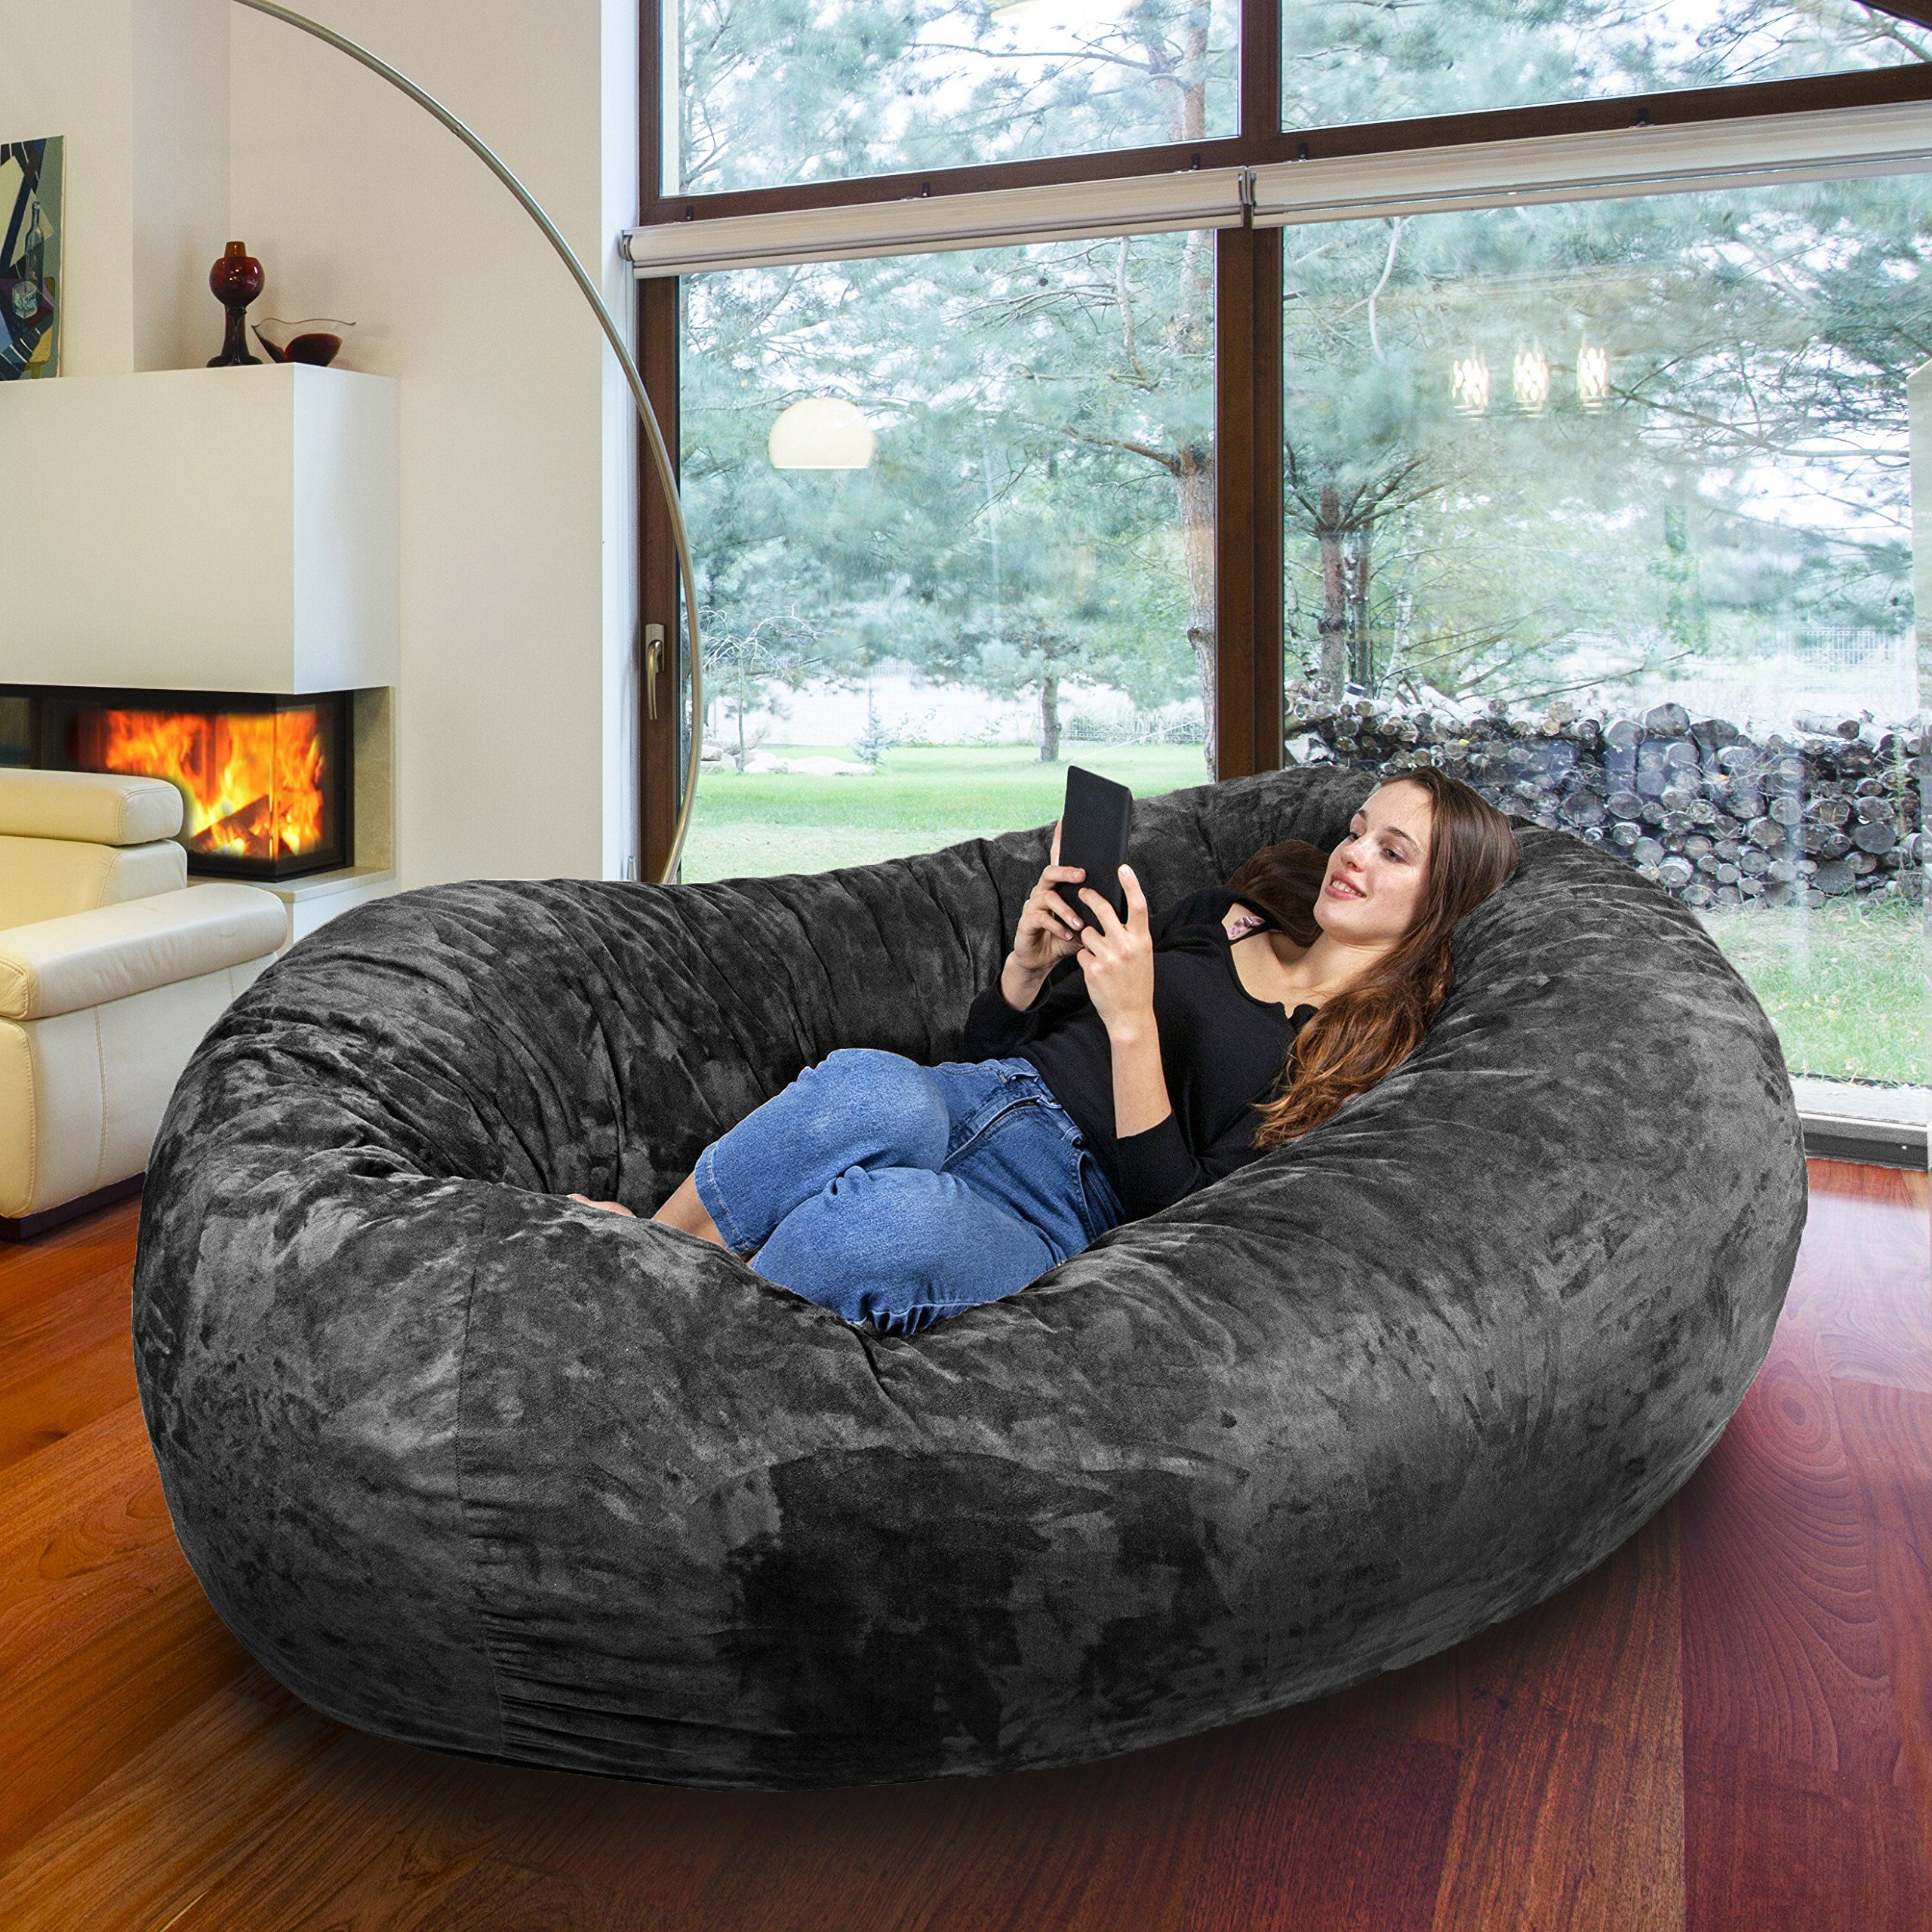 7FT Gigantic Bean Bag Chair in Steel Grey with Memory Foam Filling